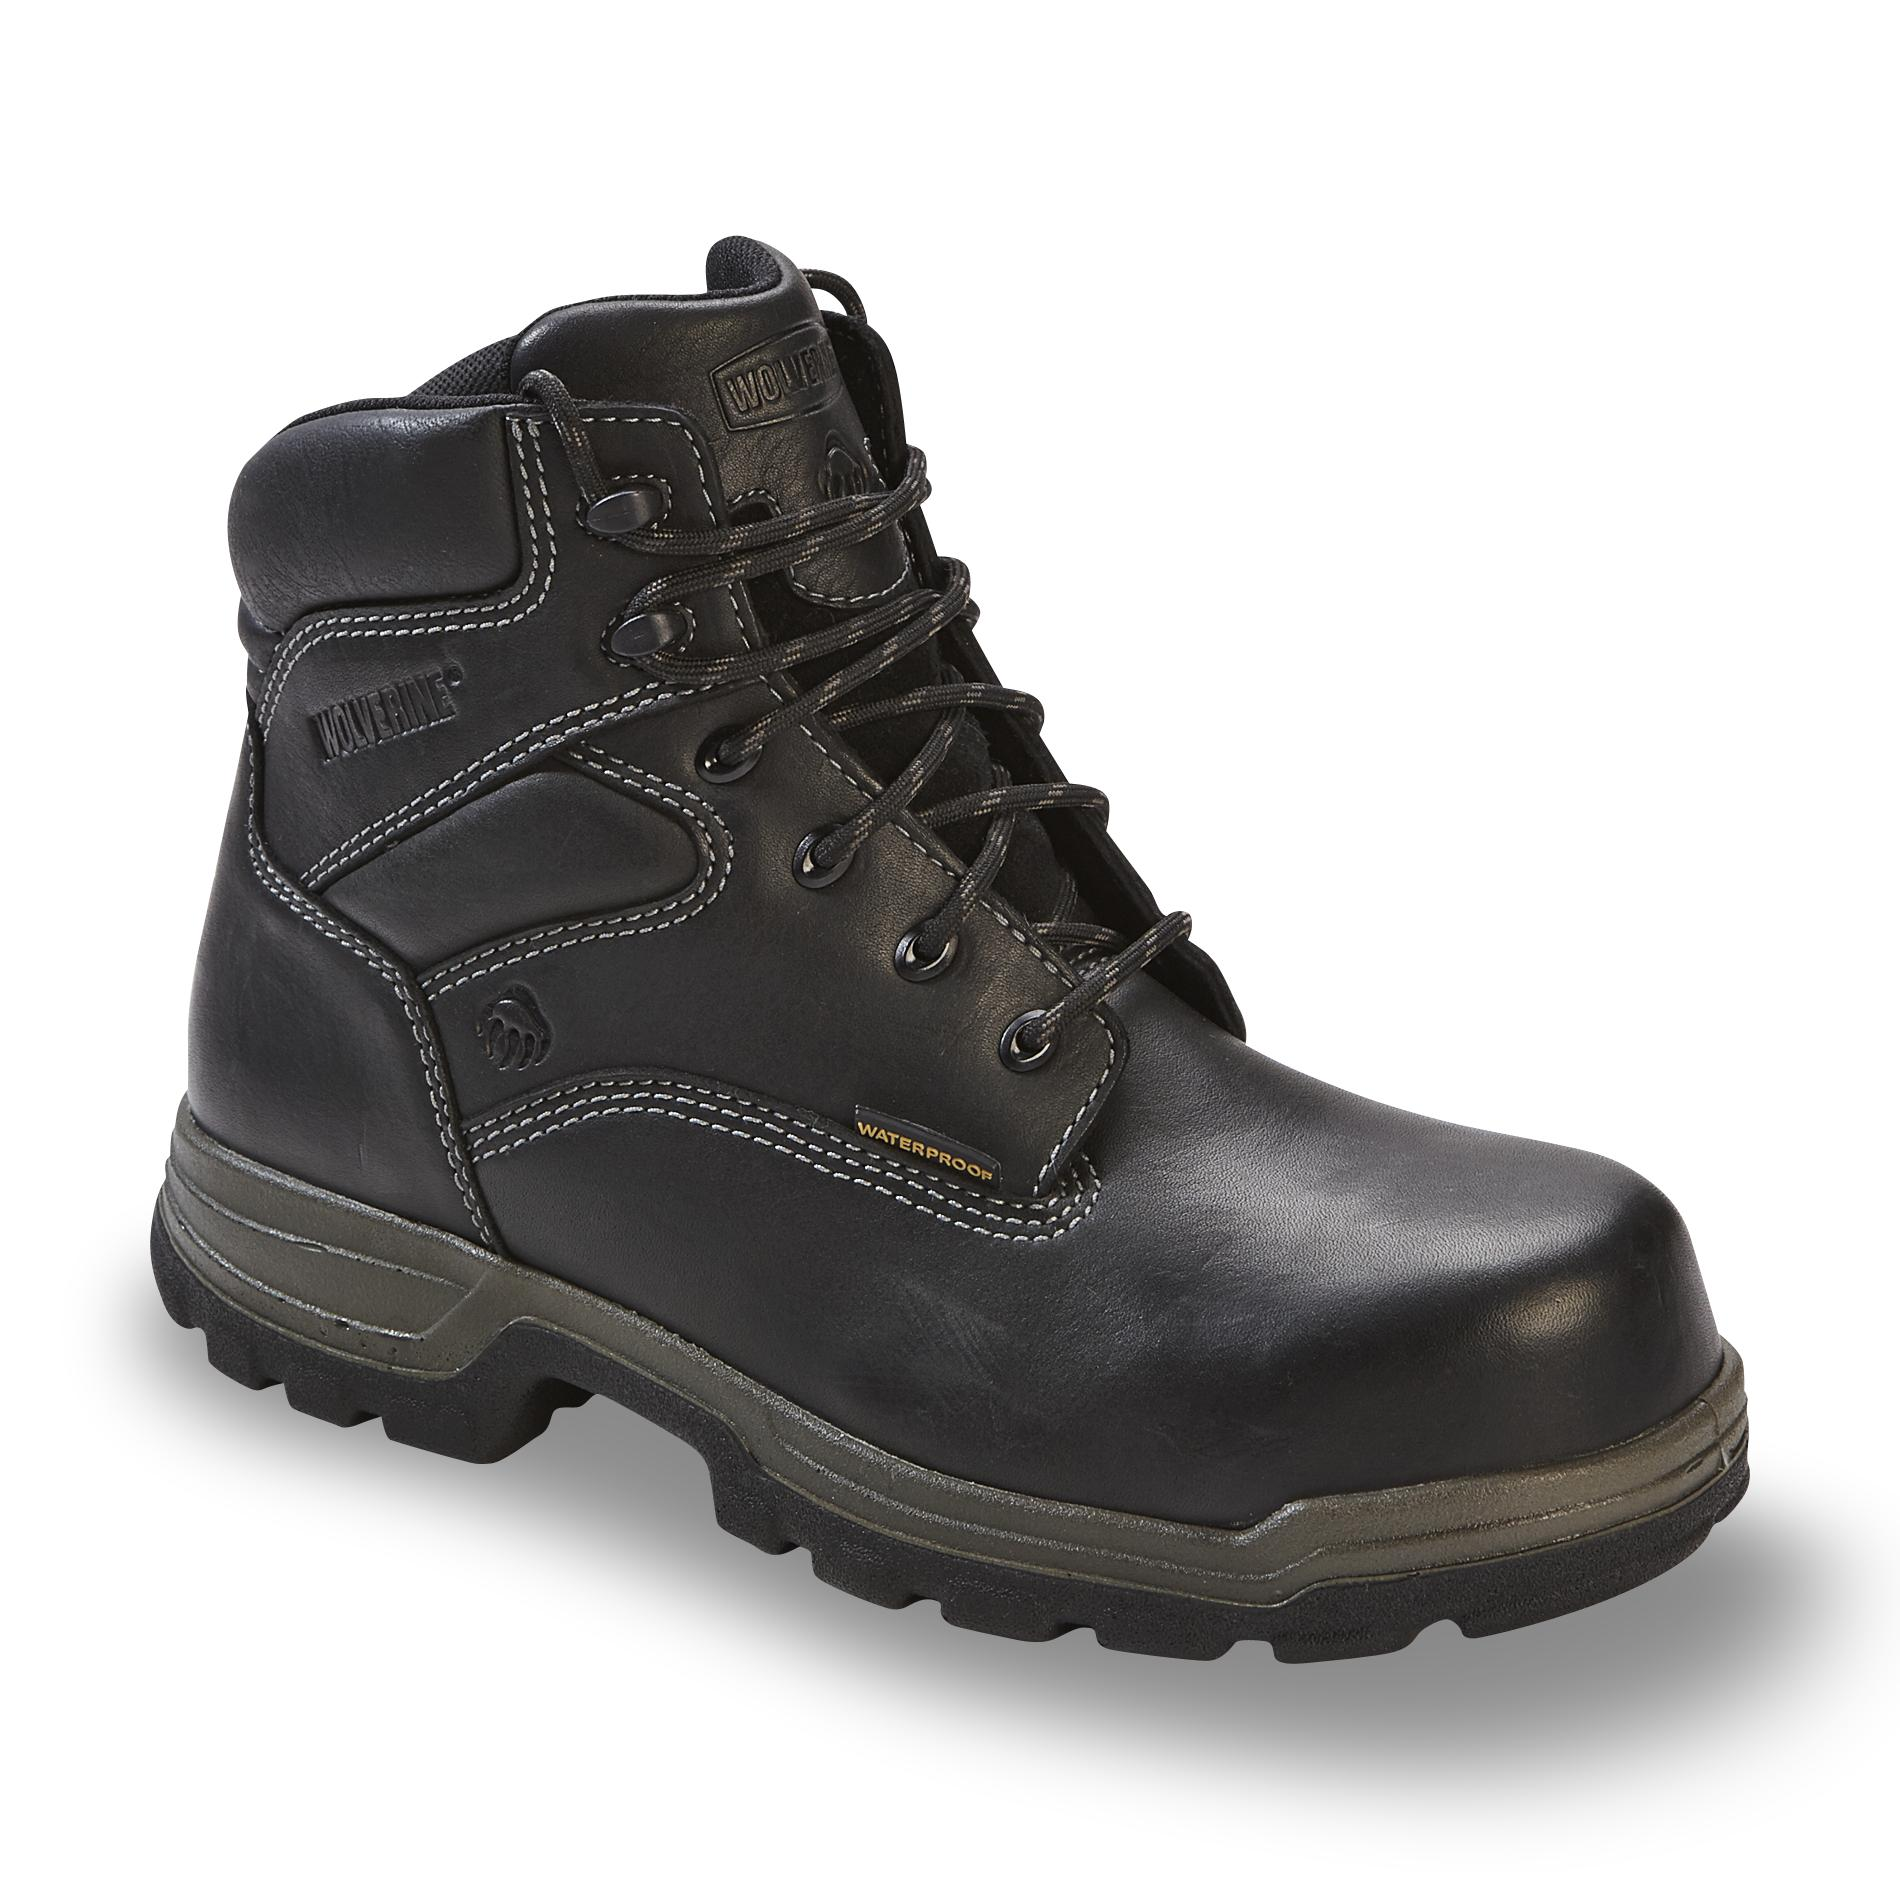 Work Boots Stores Near Me - Boot Yc